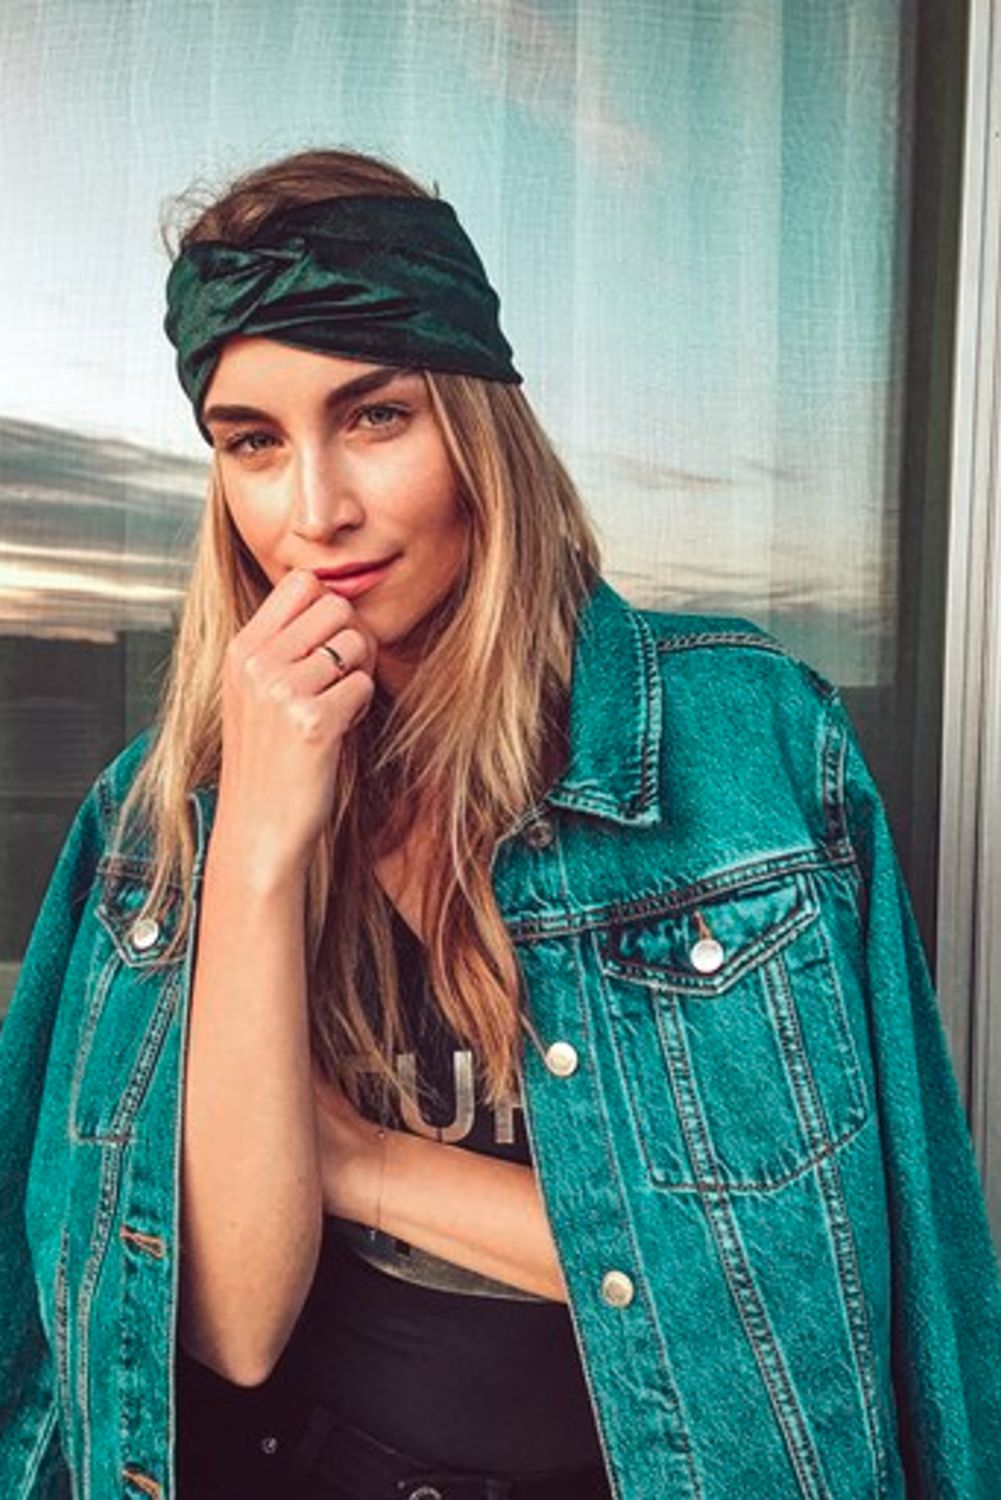 A young female model's wearing a handmade green velvet headband